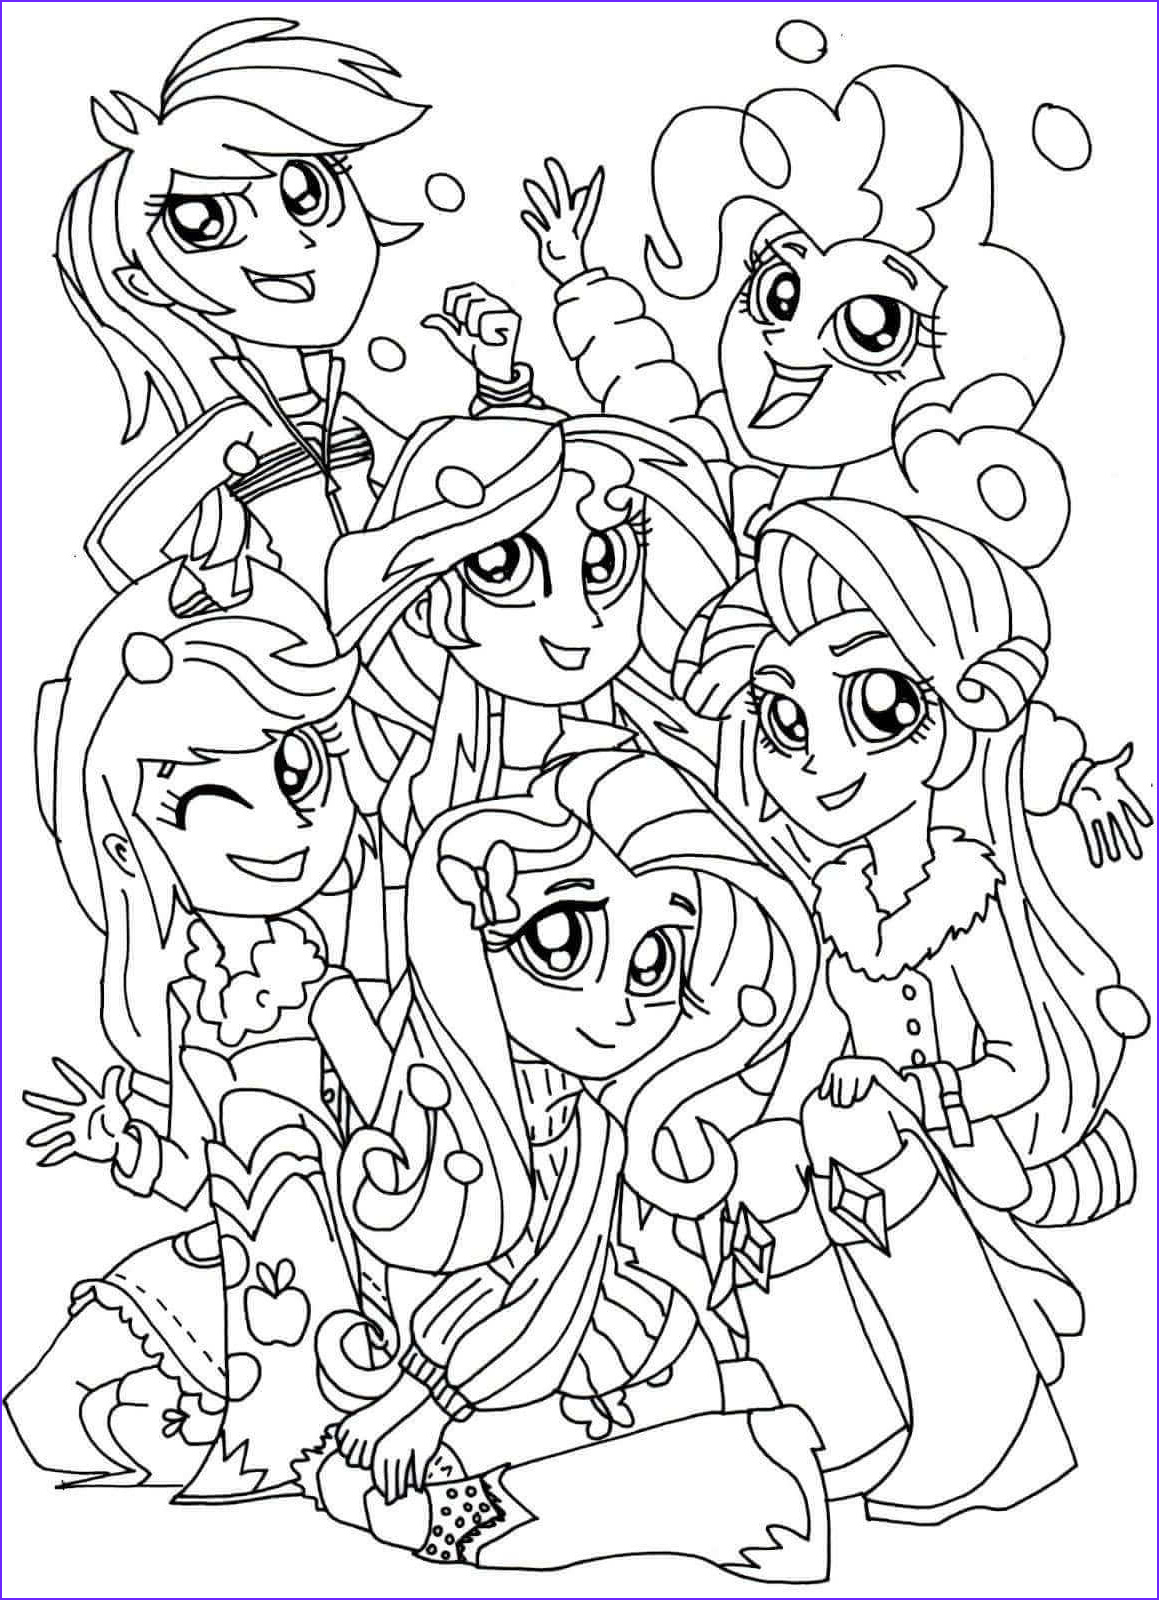 Coloring Pages Of Women Elegant Gallery 15 Printable My Little Pony Equestria Girls Coloring Pages